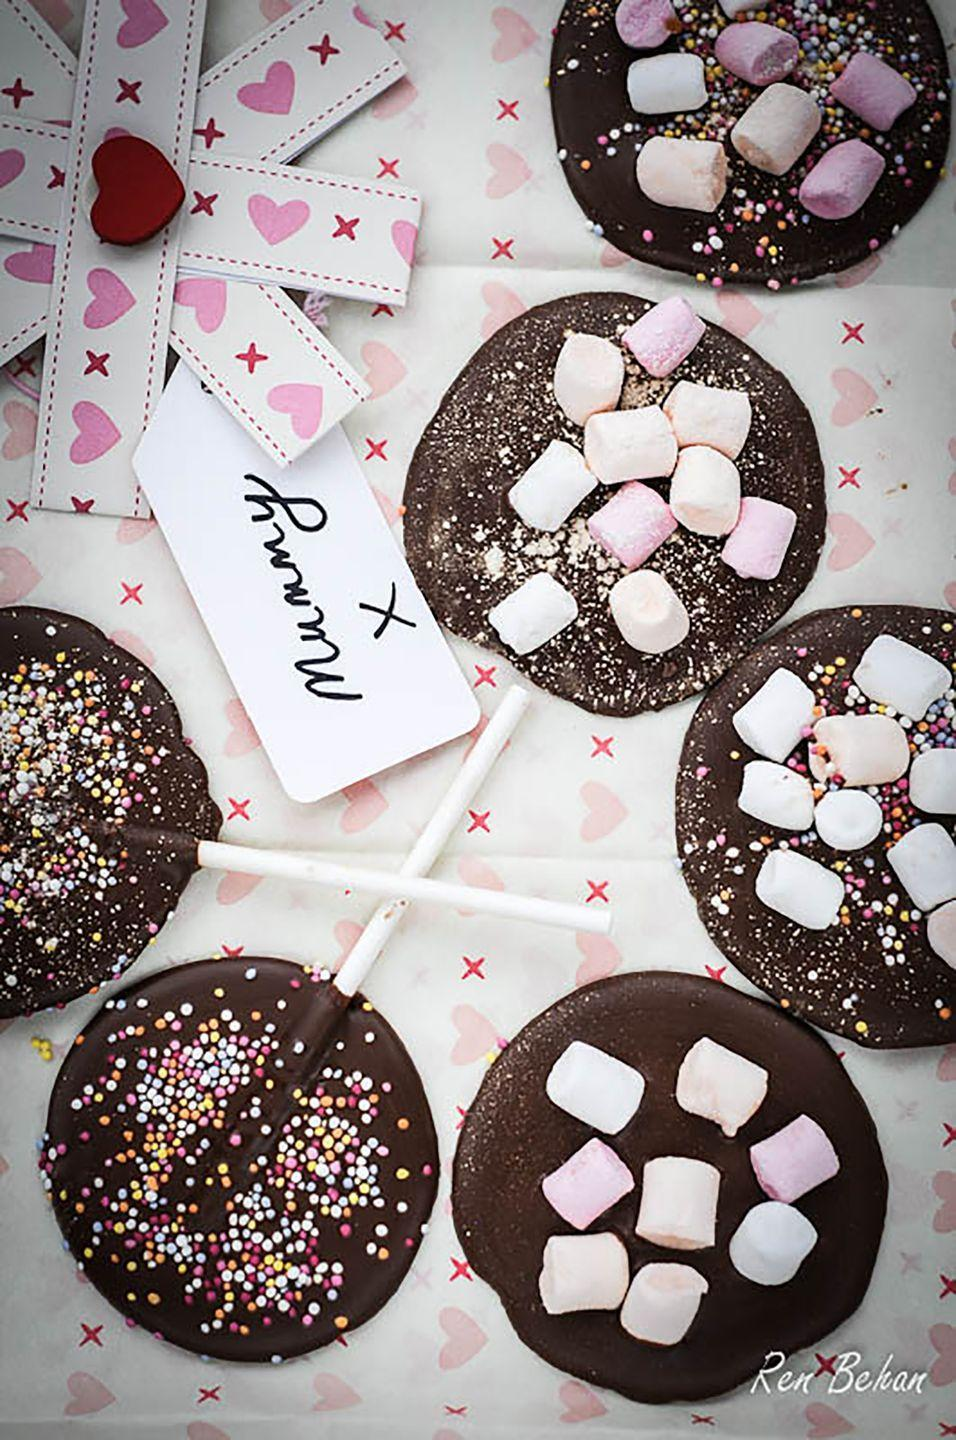 """<p>Chocoholic moms will love munching on these decadent treats, which you can decorate with marshmallows, sprinkles, or a candy of your choice.</p><p><strong>Get the recipe at <a href=""""http://www.renbehan.com/2013/03/homemade-mothers-day-chocolates-that-dads-can-help-with.html"""" rel=""""nofollow noopener"""" target=""""_blank"""" data-ylk=""""slk:Ren Behan"""" class=""""link rapid-noclick-resp"""">Ren Behan</a>.</strong></p>"""